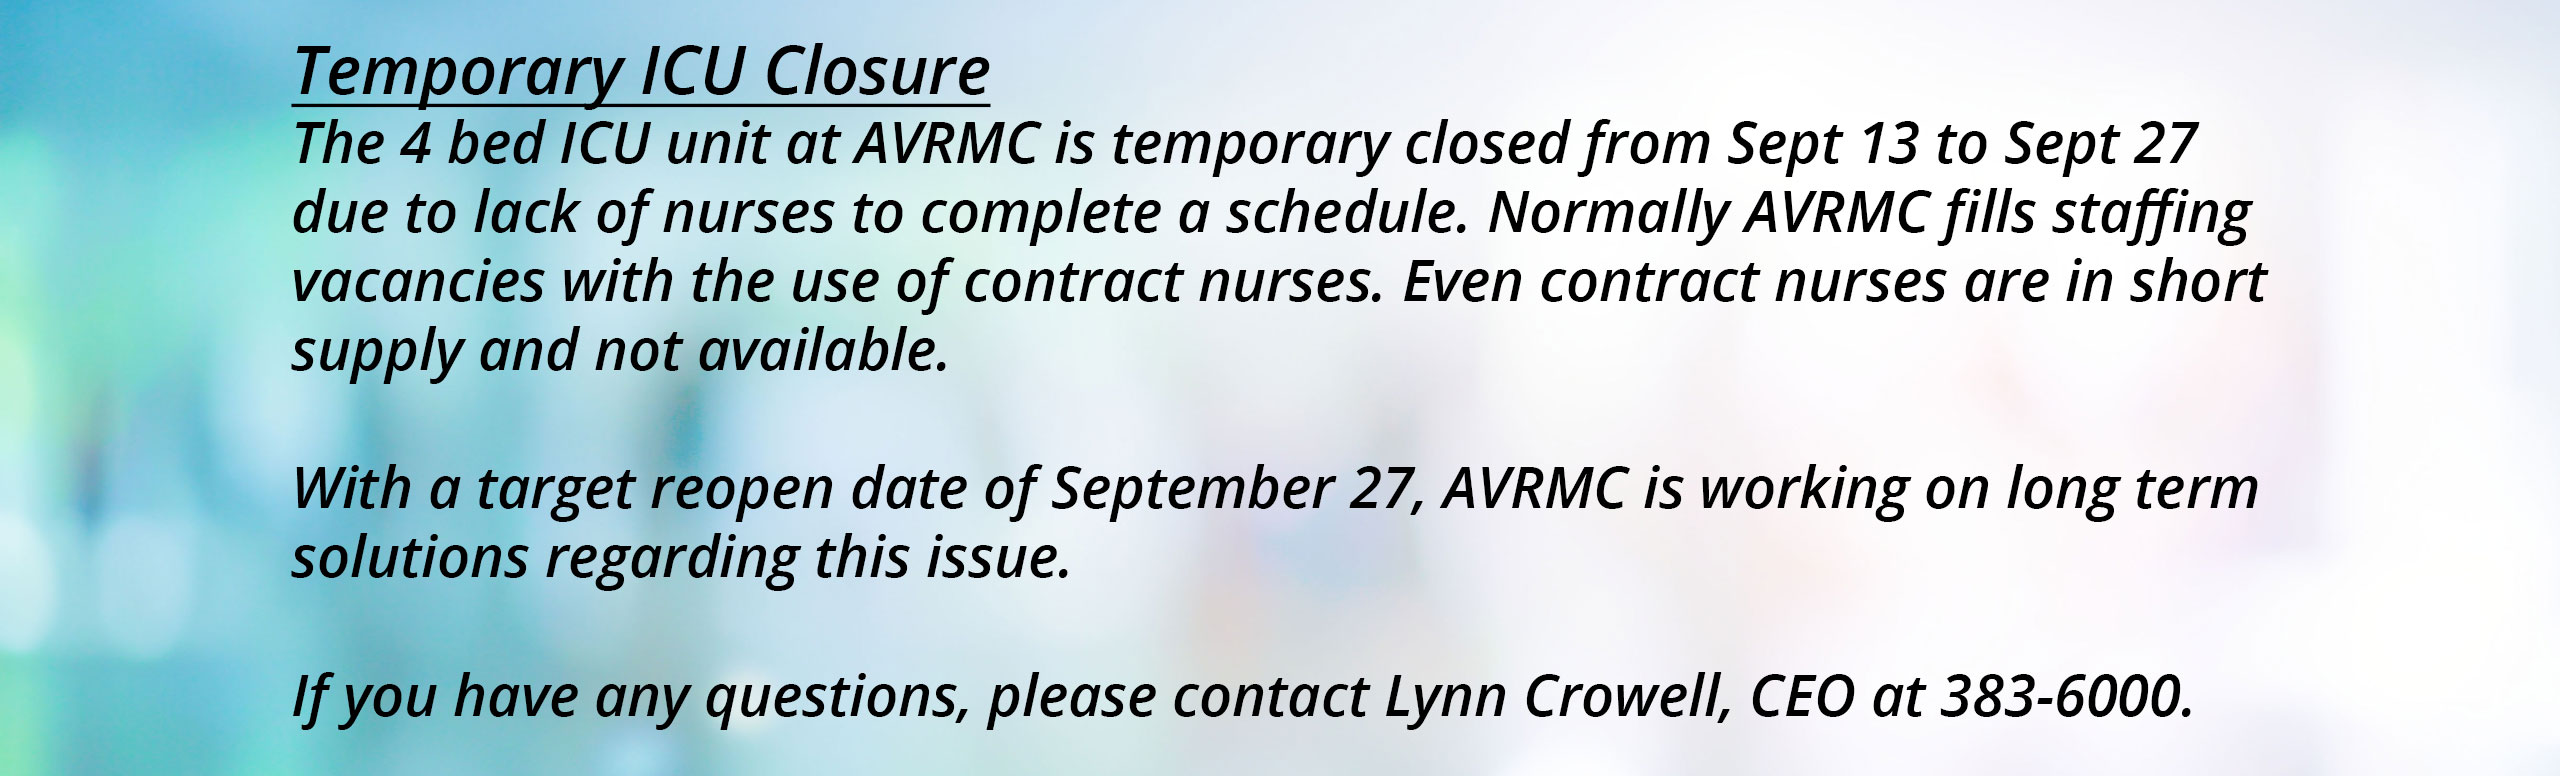 Temporary ICU Closure The 4 bed ICU unit at AVRMC is temporary closed from Sept 13 to Sept 27 due to lack of nurses to complete a schedule. Normally AVRMC fills staffing vacancies with the use of contract nurses. Even contract nurses are in short supply and not available. With a target reopen date of September 27, AVRMC is working on long term solutions regarding this issue. If you have any questions, please contact Lynn Crowell, CEO at 383-6000.